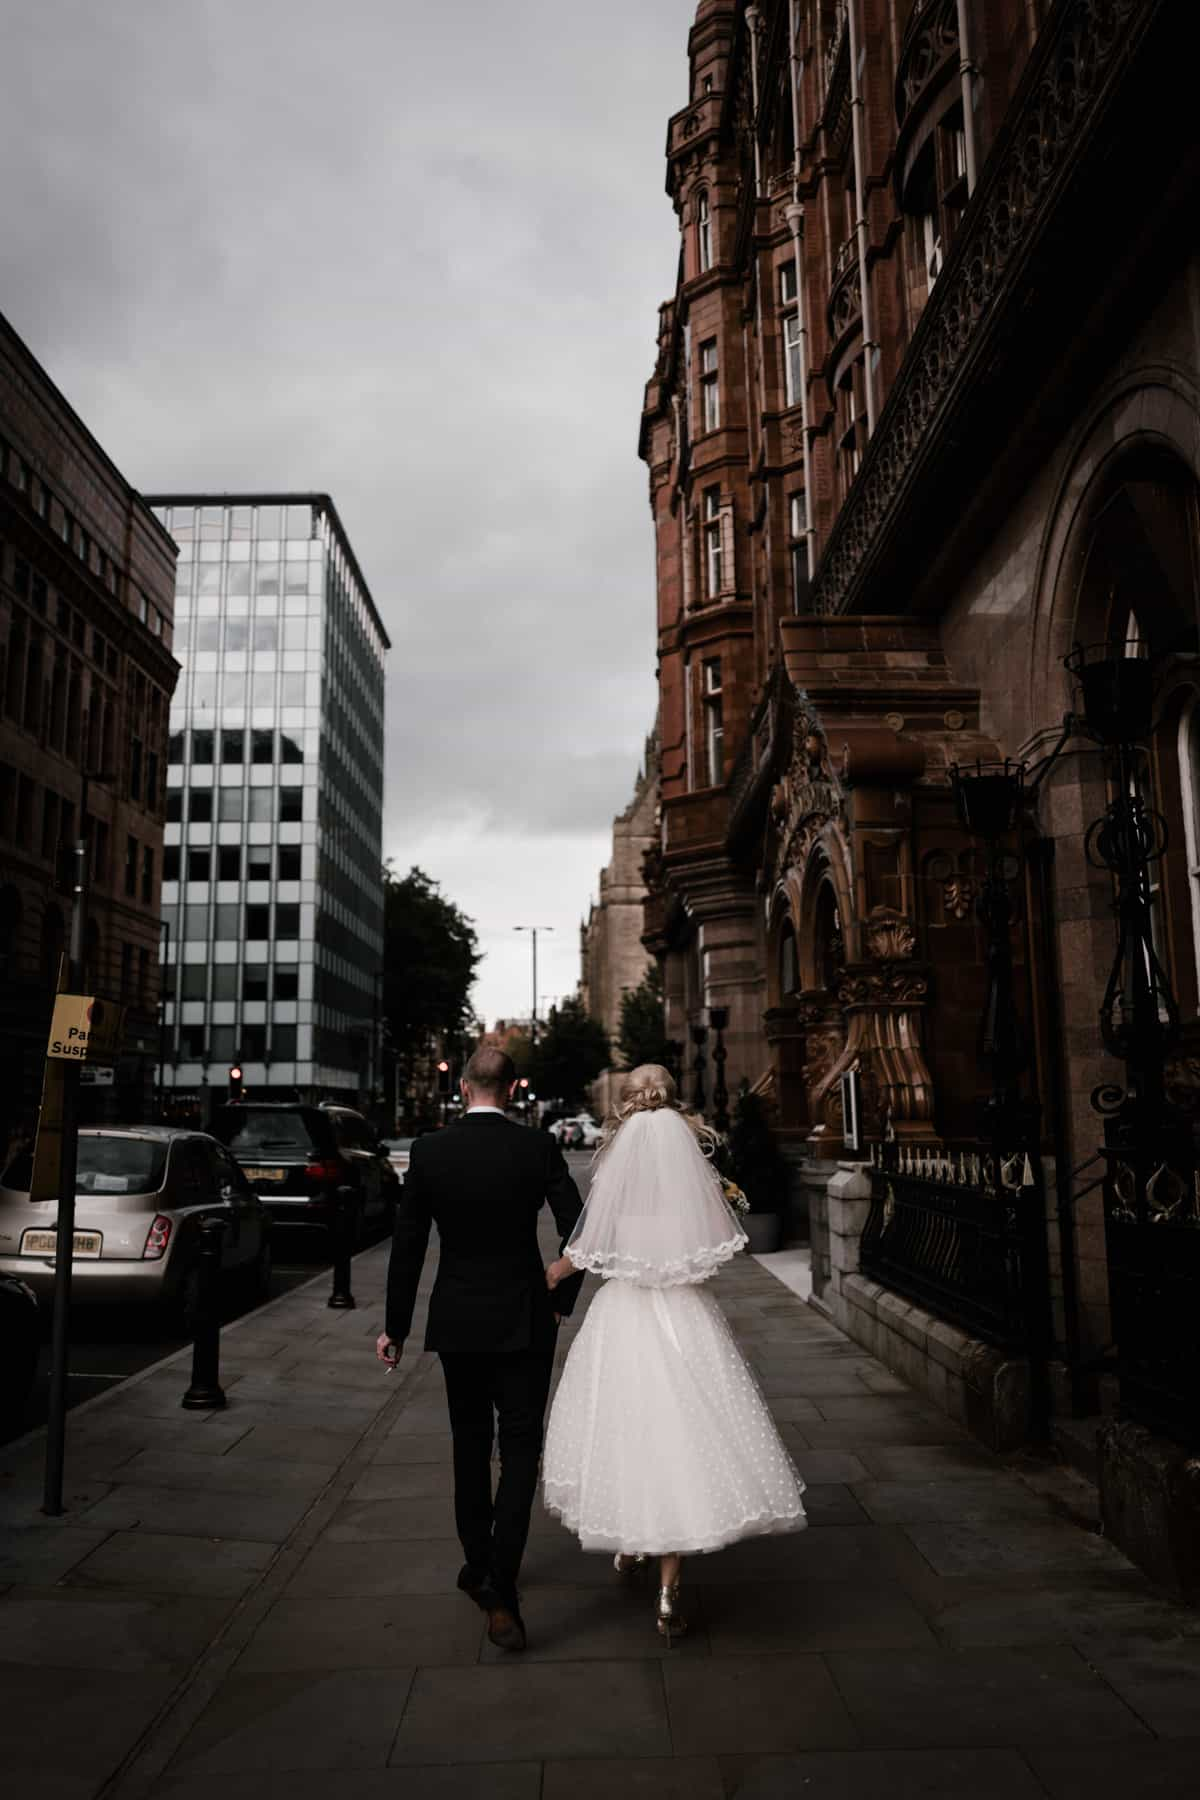 Bride and groom portrait near the Midland hotel